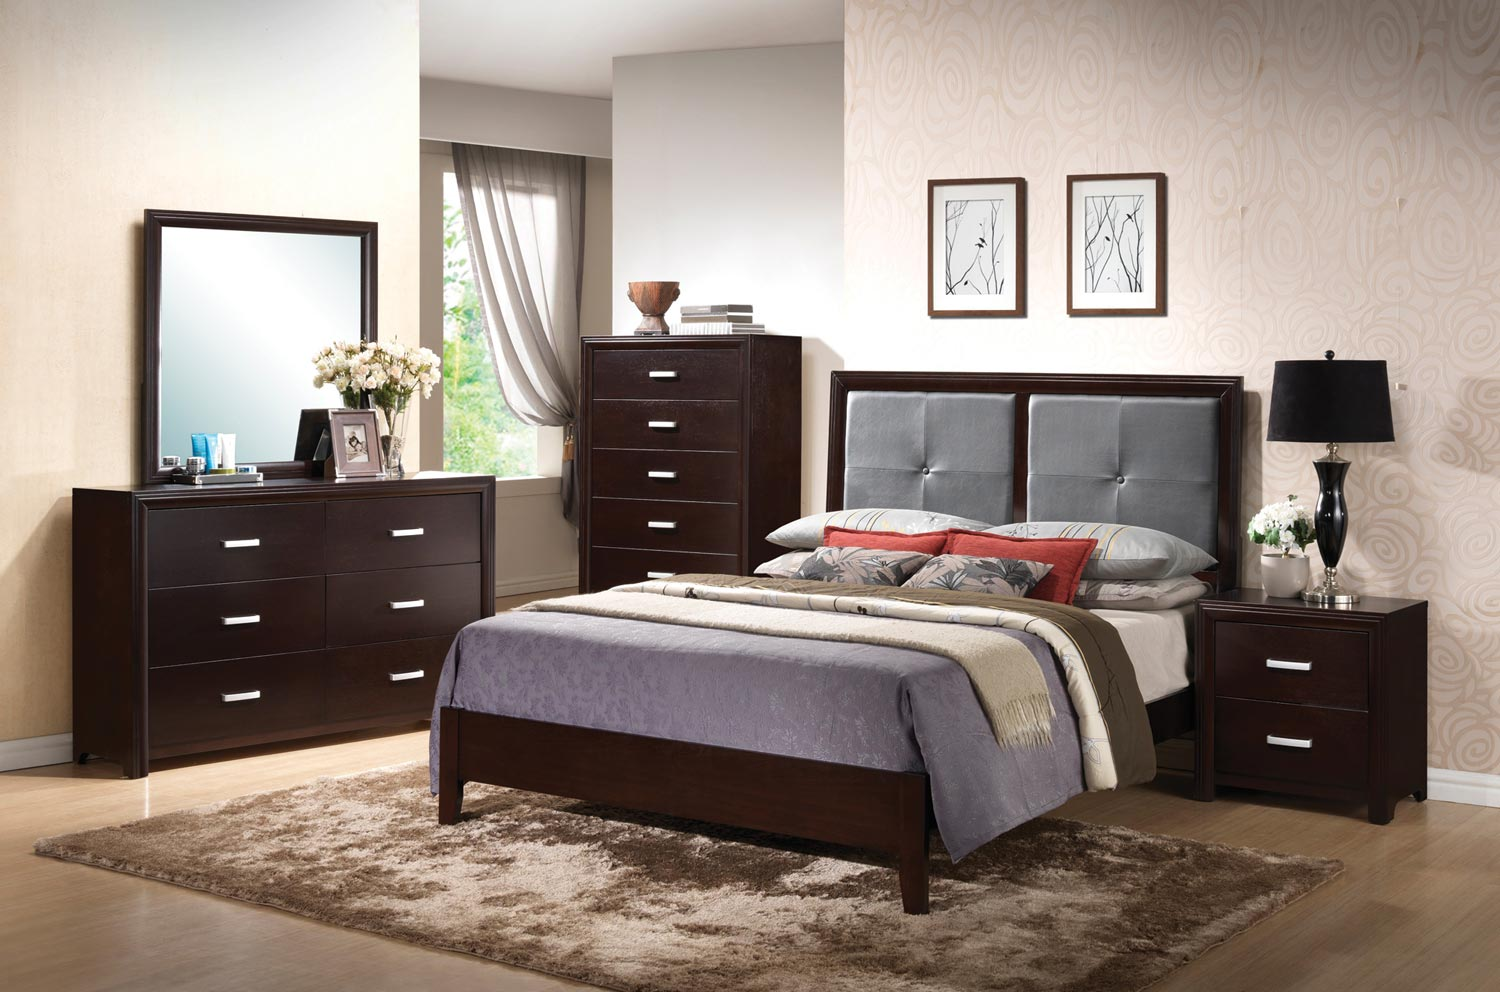 Coaster andreas fabric upholstered low profile bedroom set for Casual master bedroom ideas